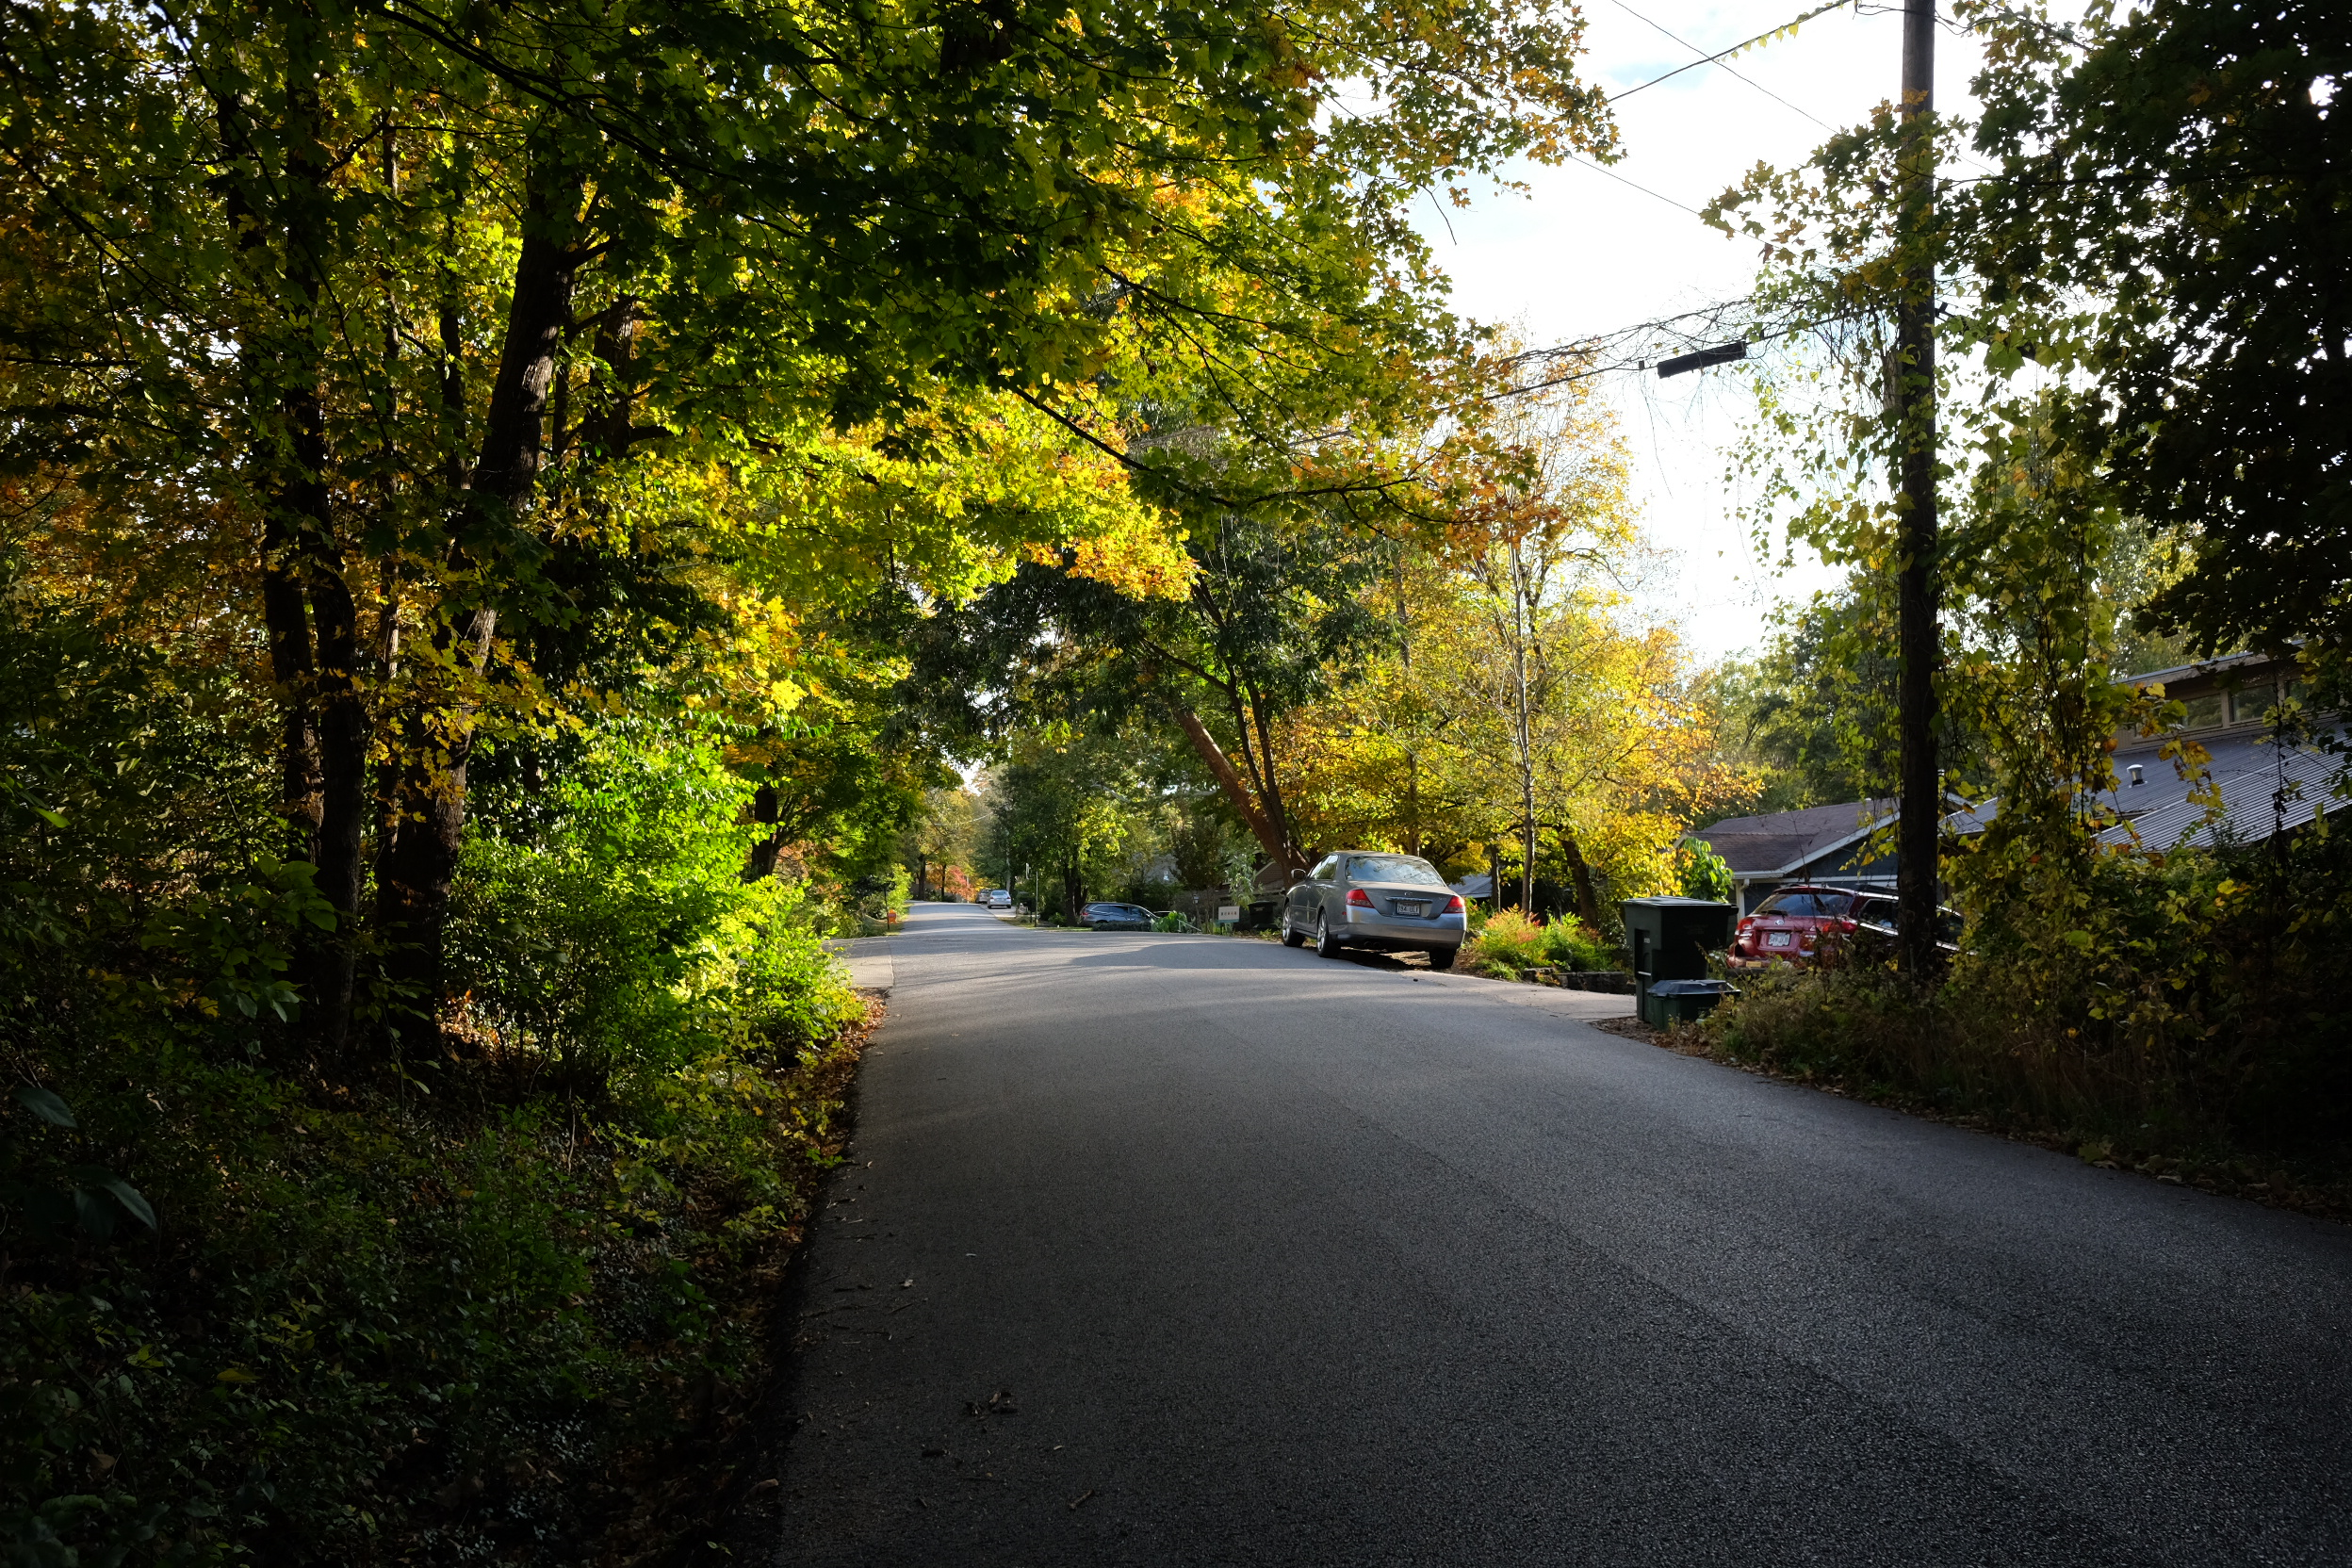 Typical neighborhood street in Fayetteville